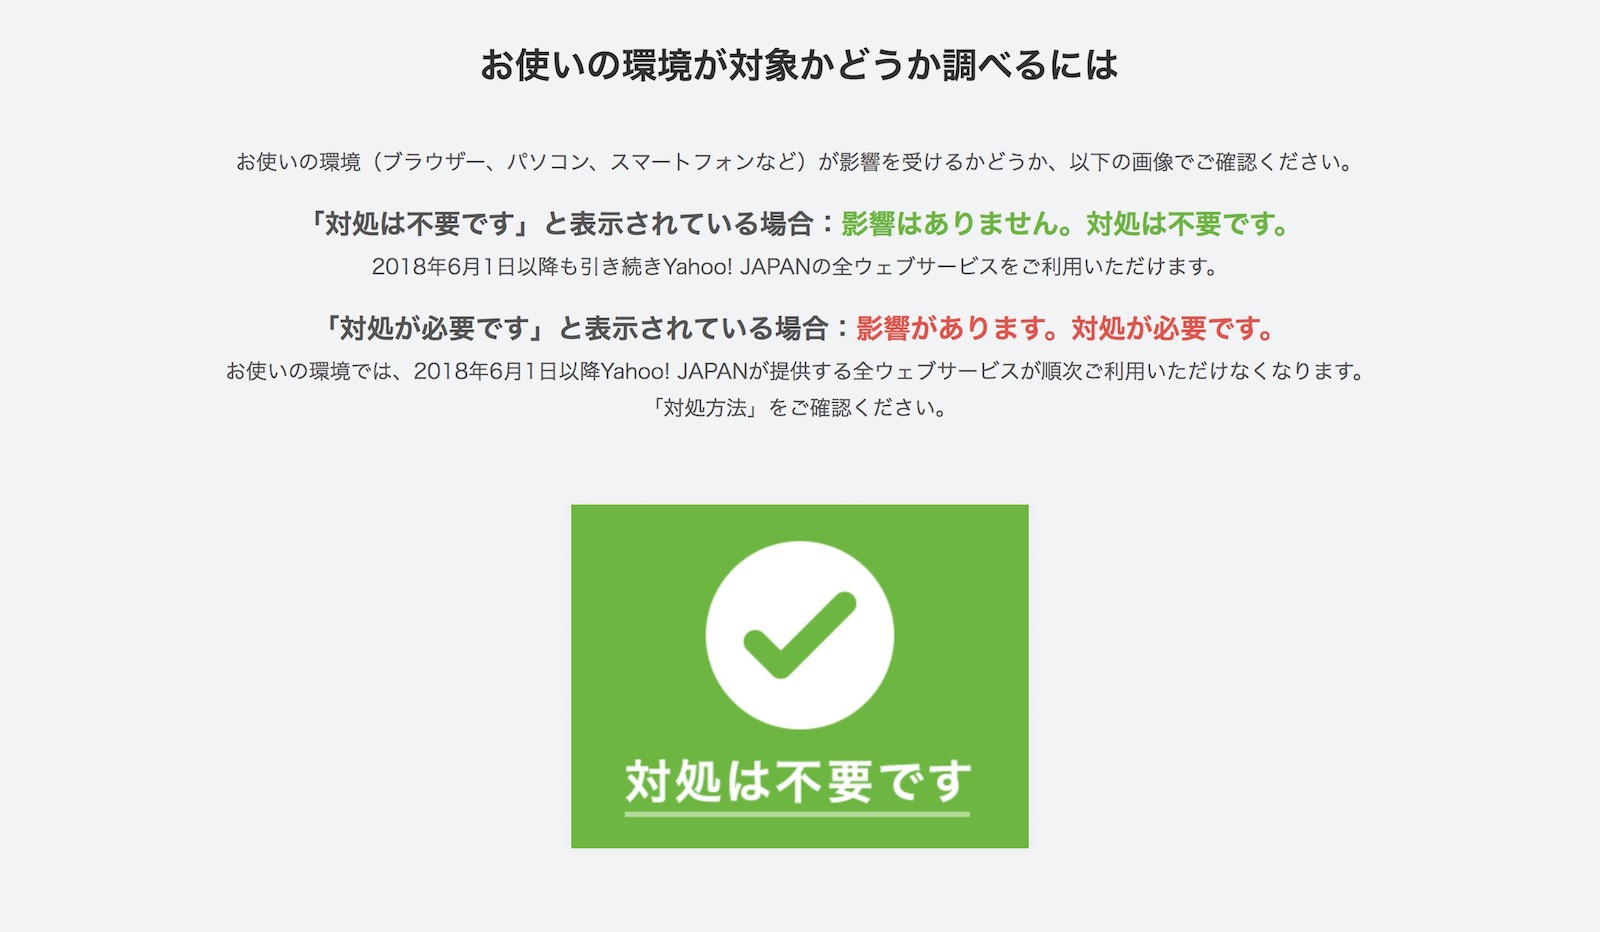 Yahoo Japan Supported or not